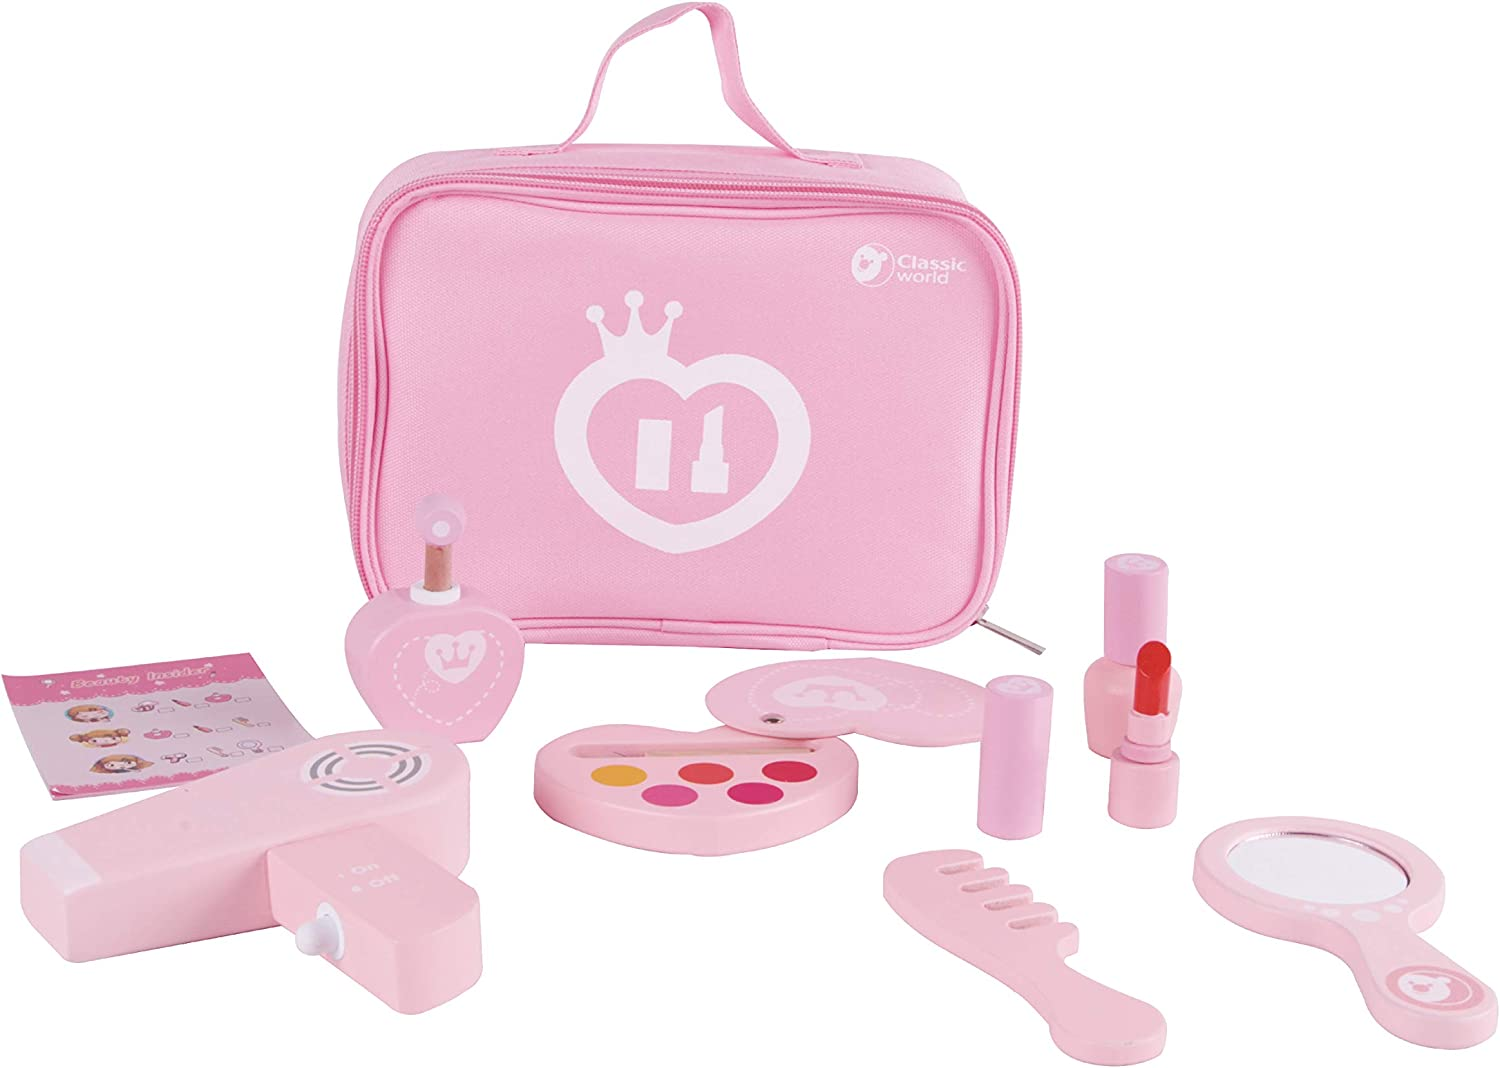 Classic World Make-up Set Wooden Cosmetics Beauty Toy for Kids Toddler Girls Pretend Play: Toys & Games